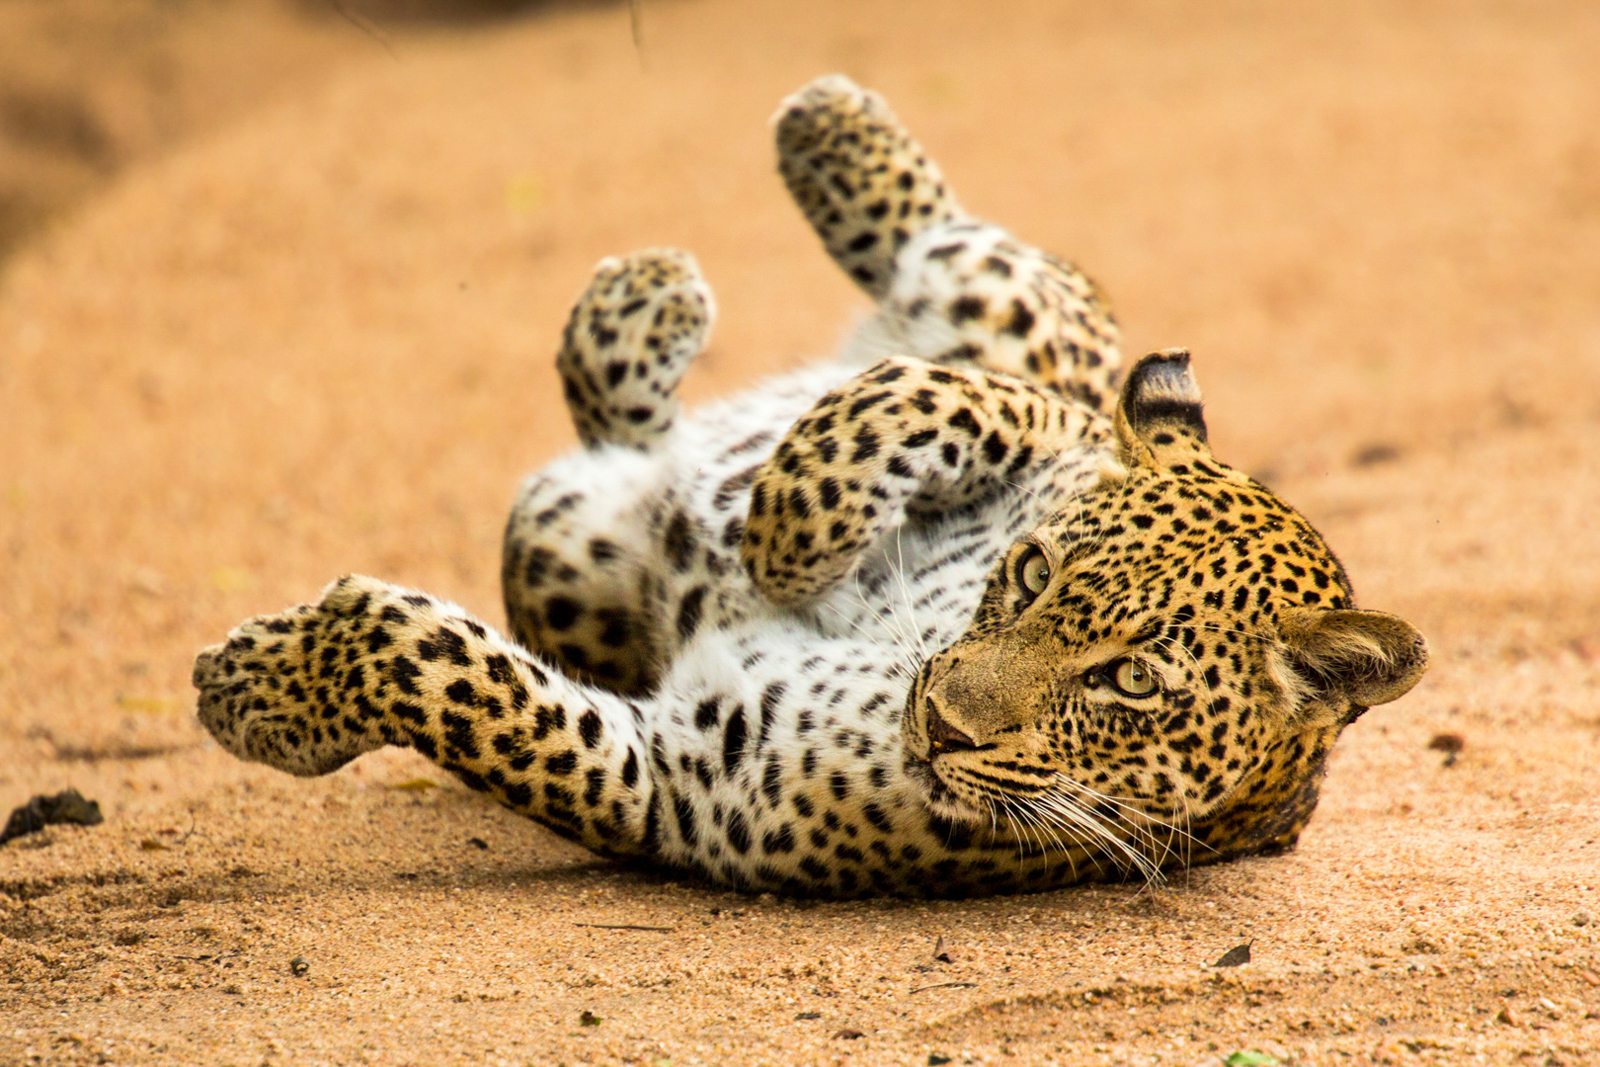 Female leopard rolling at Kirkman's Camp, Sabi Sands, South Africa ©Caleb Shephard